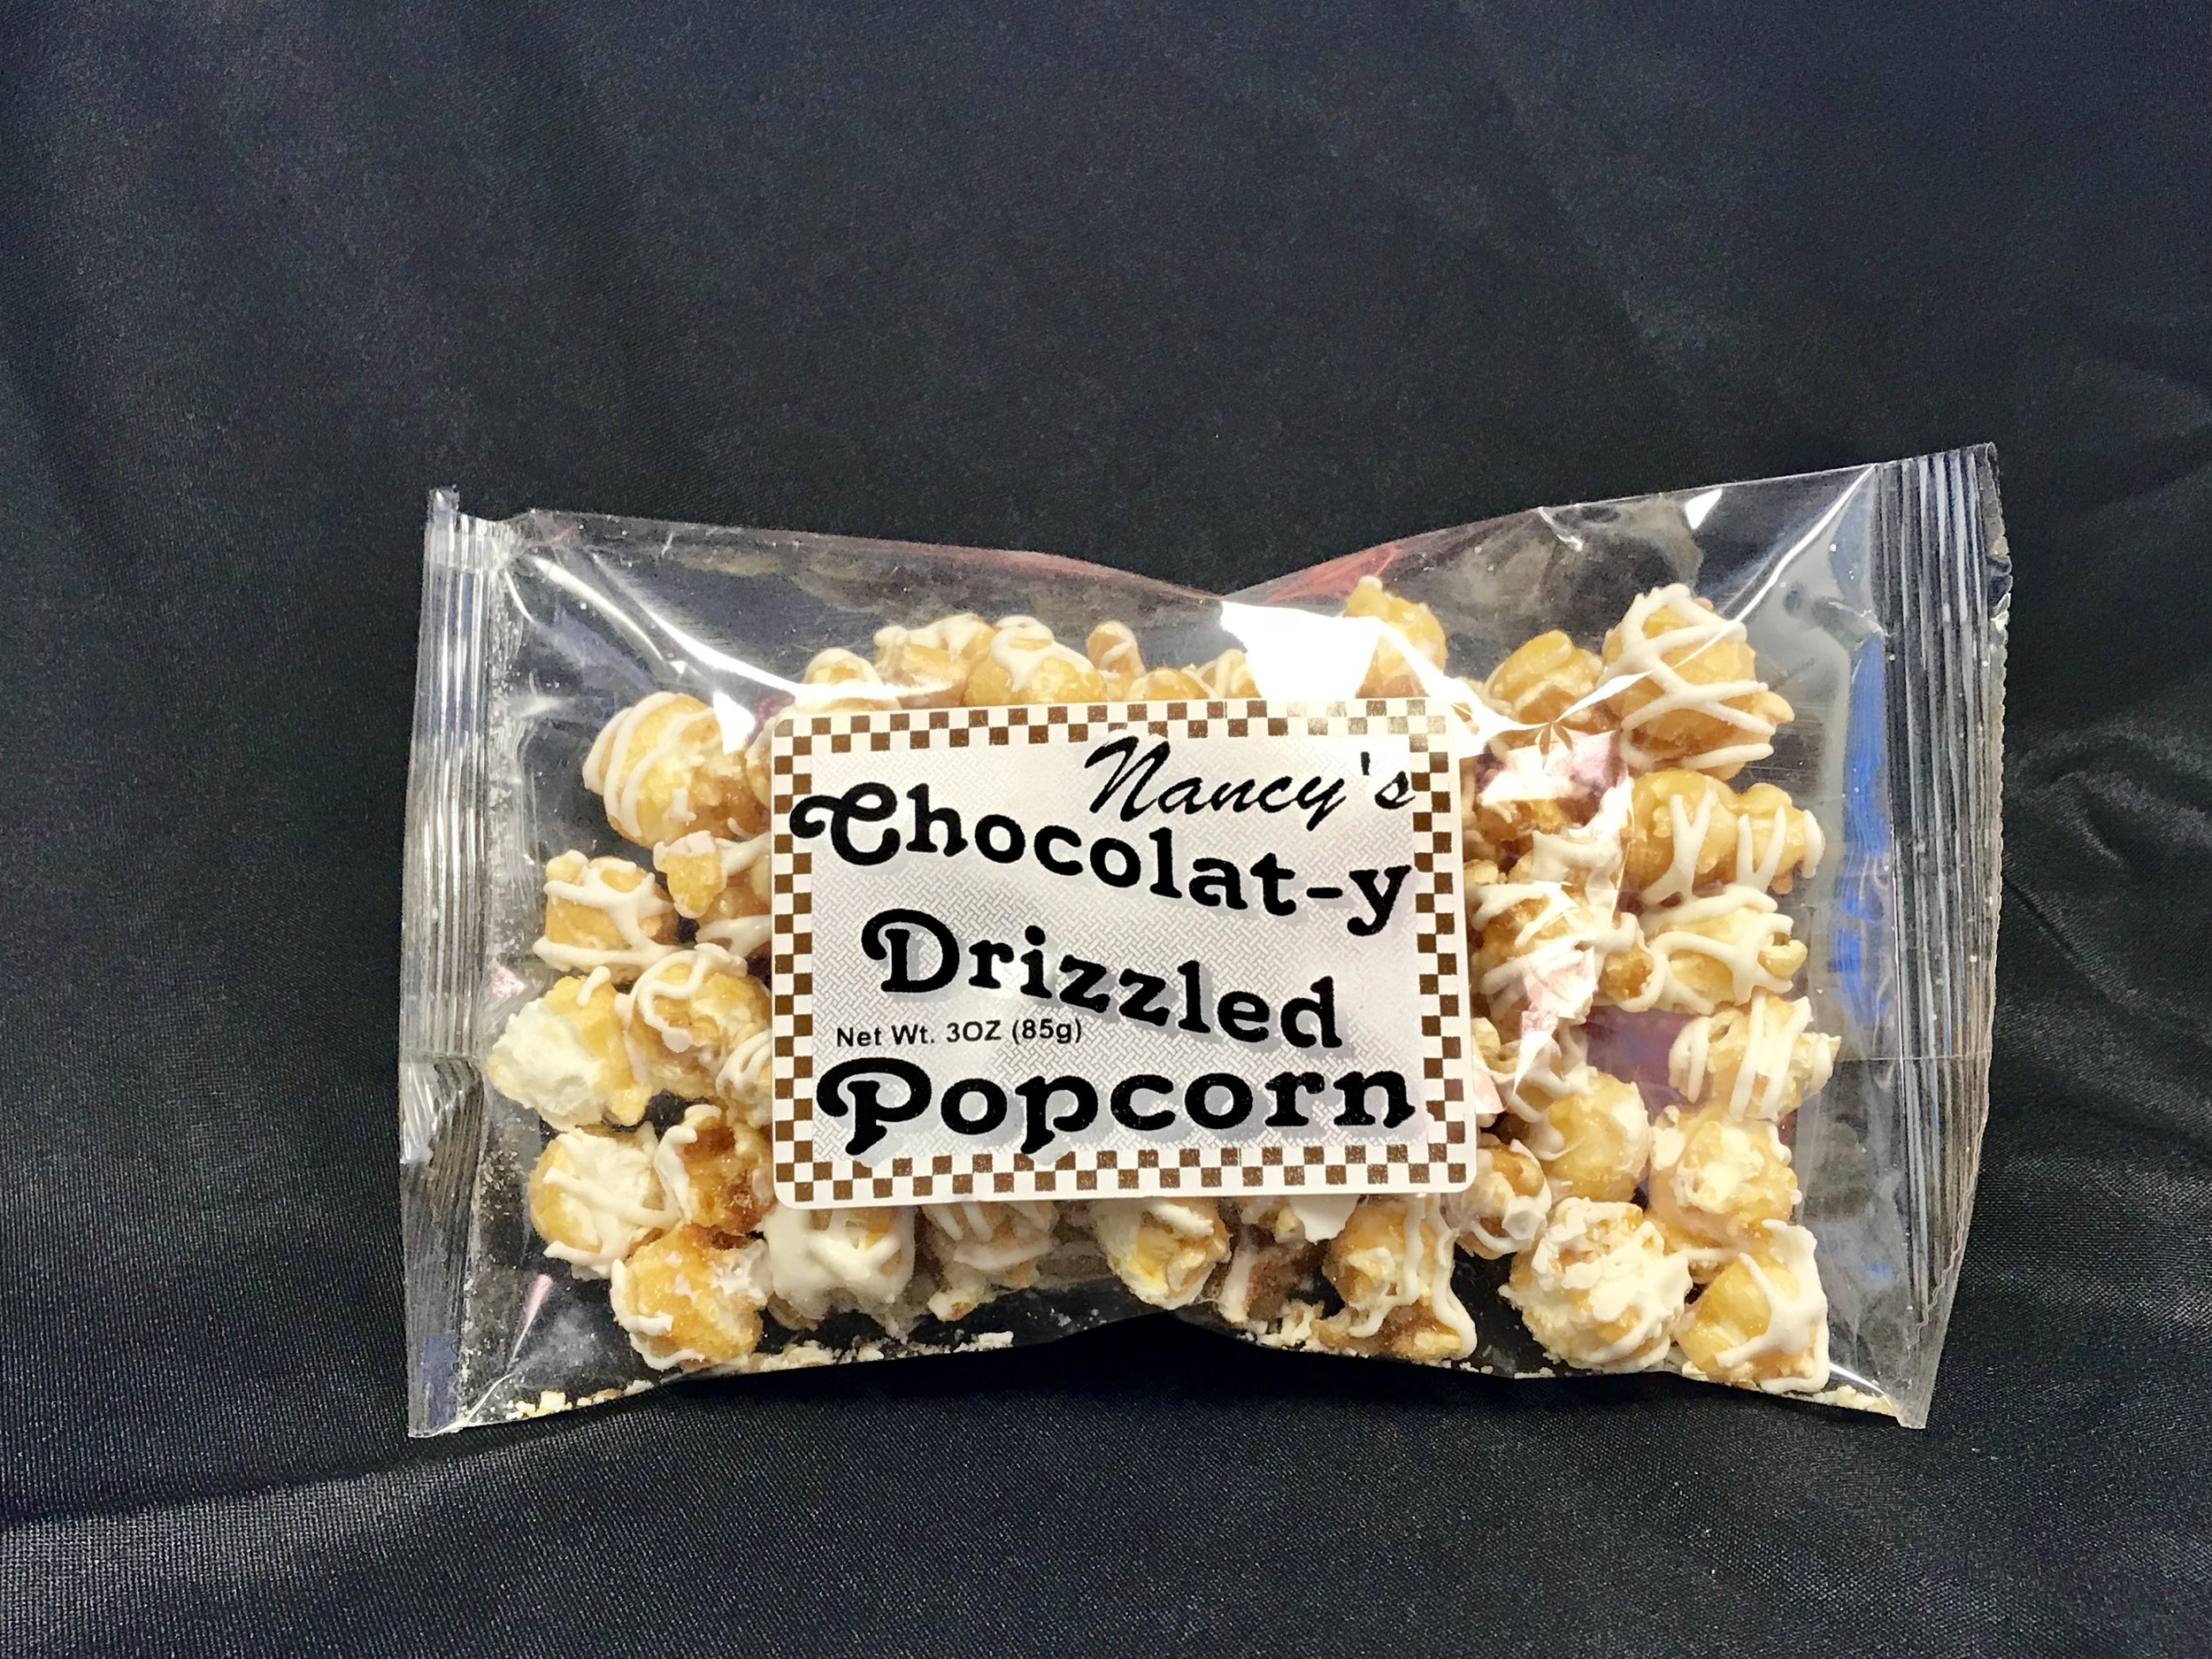 White Chocolate Drizzled Caramel Corn - 3 oz bag of delicious caramel popcorn drizzled with creamy white chocolate. So delicious and makes the perfect holiday gift!